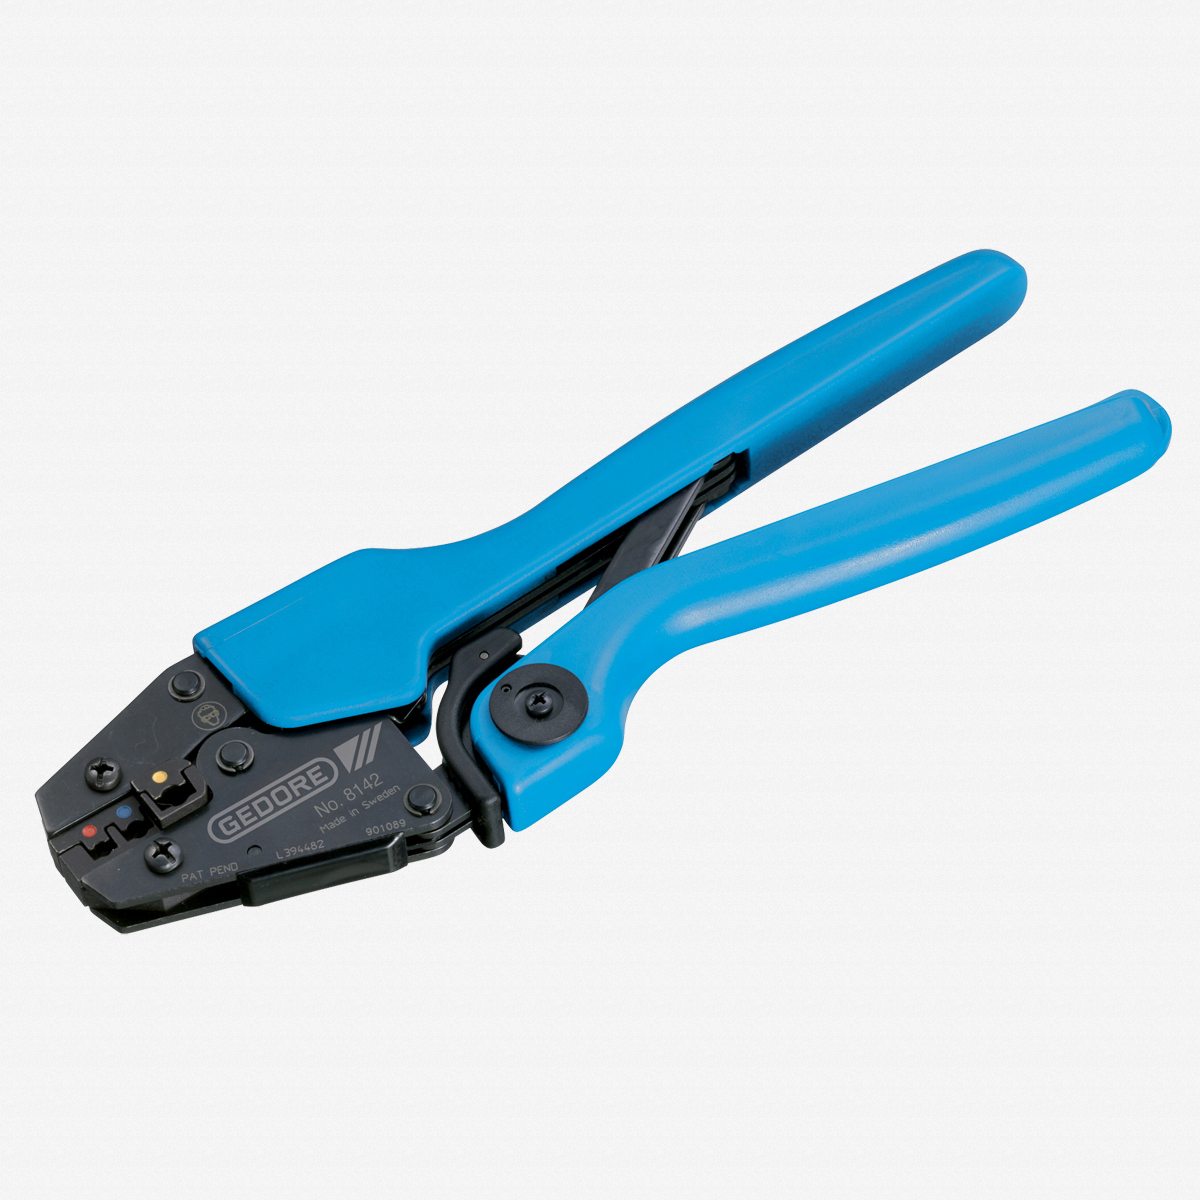 Gedore 8142 Precision crimp wrench for insulated terminals - KC Tool